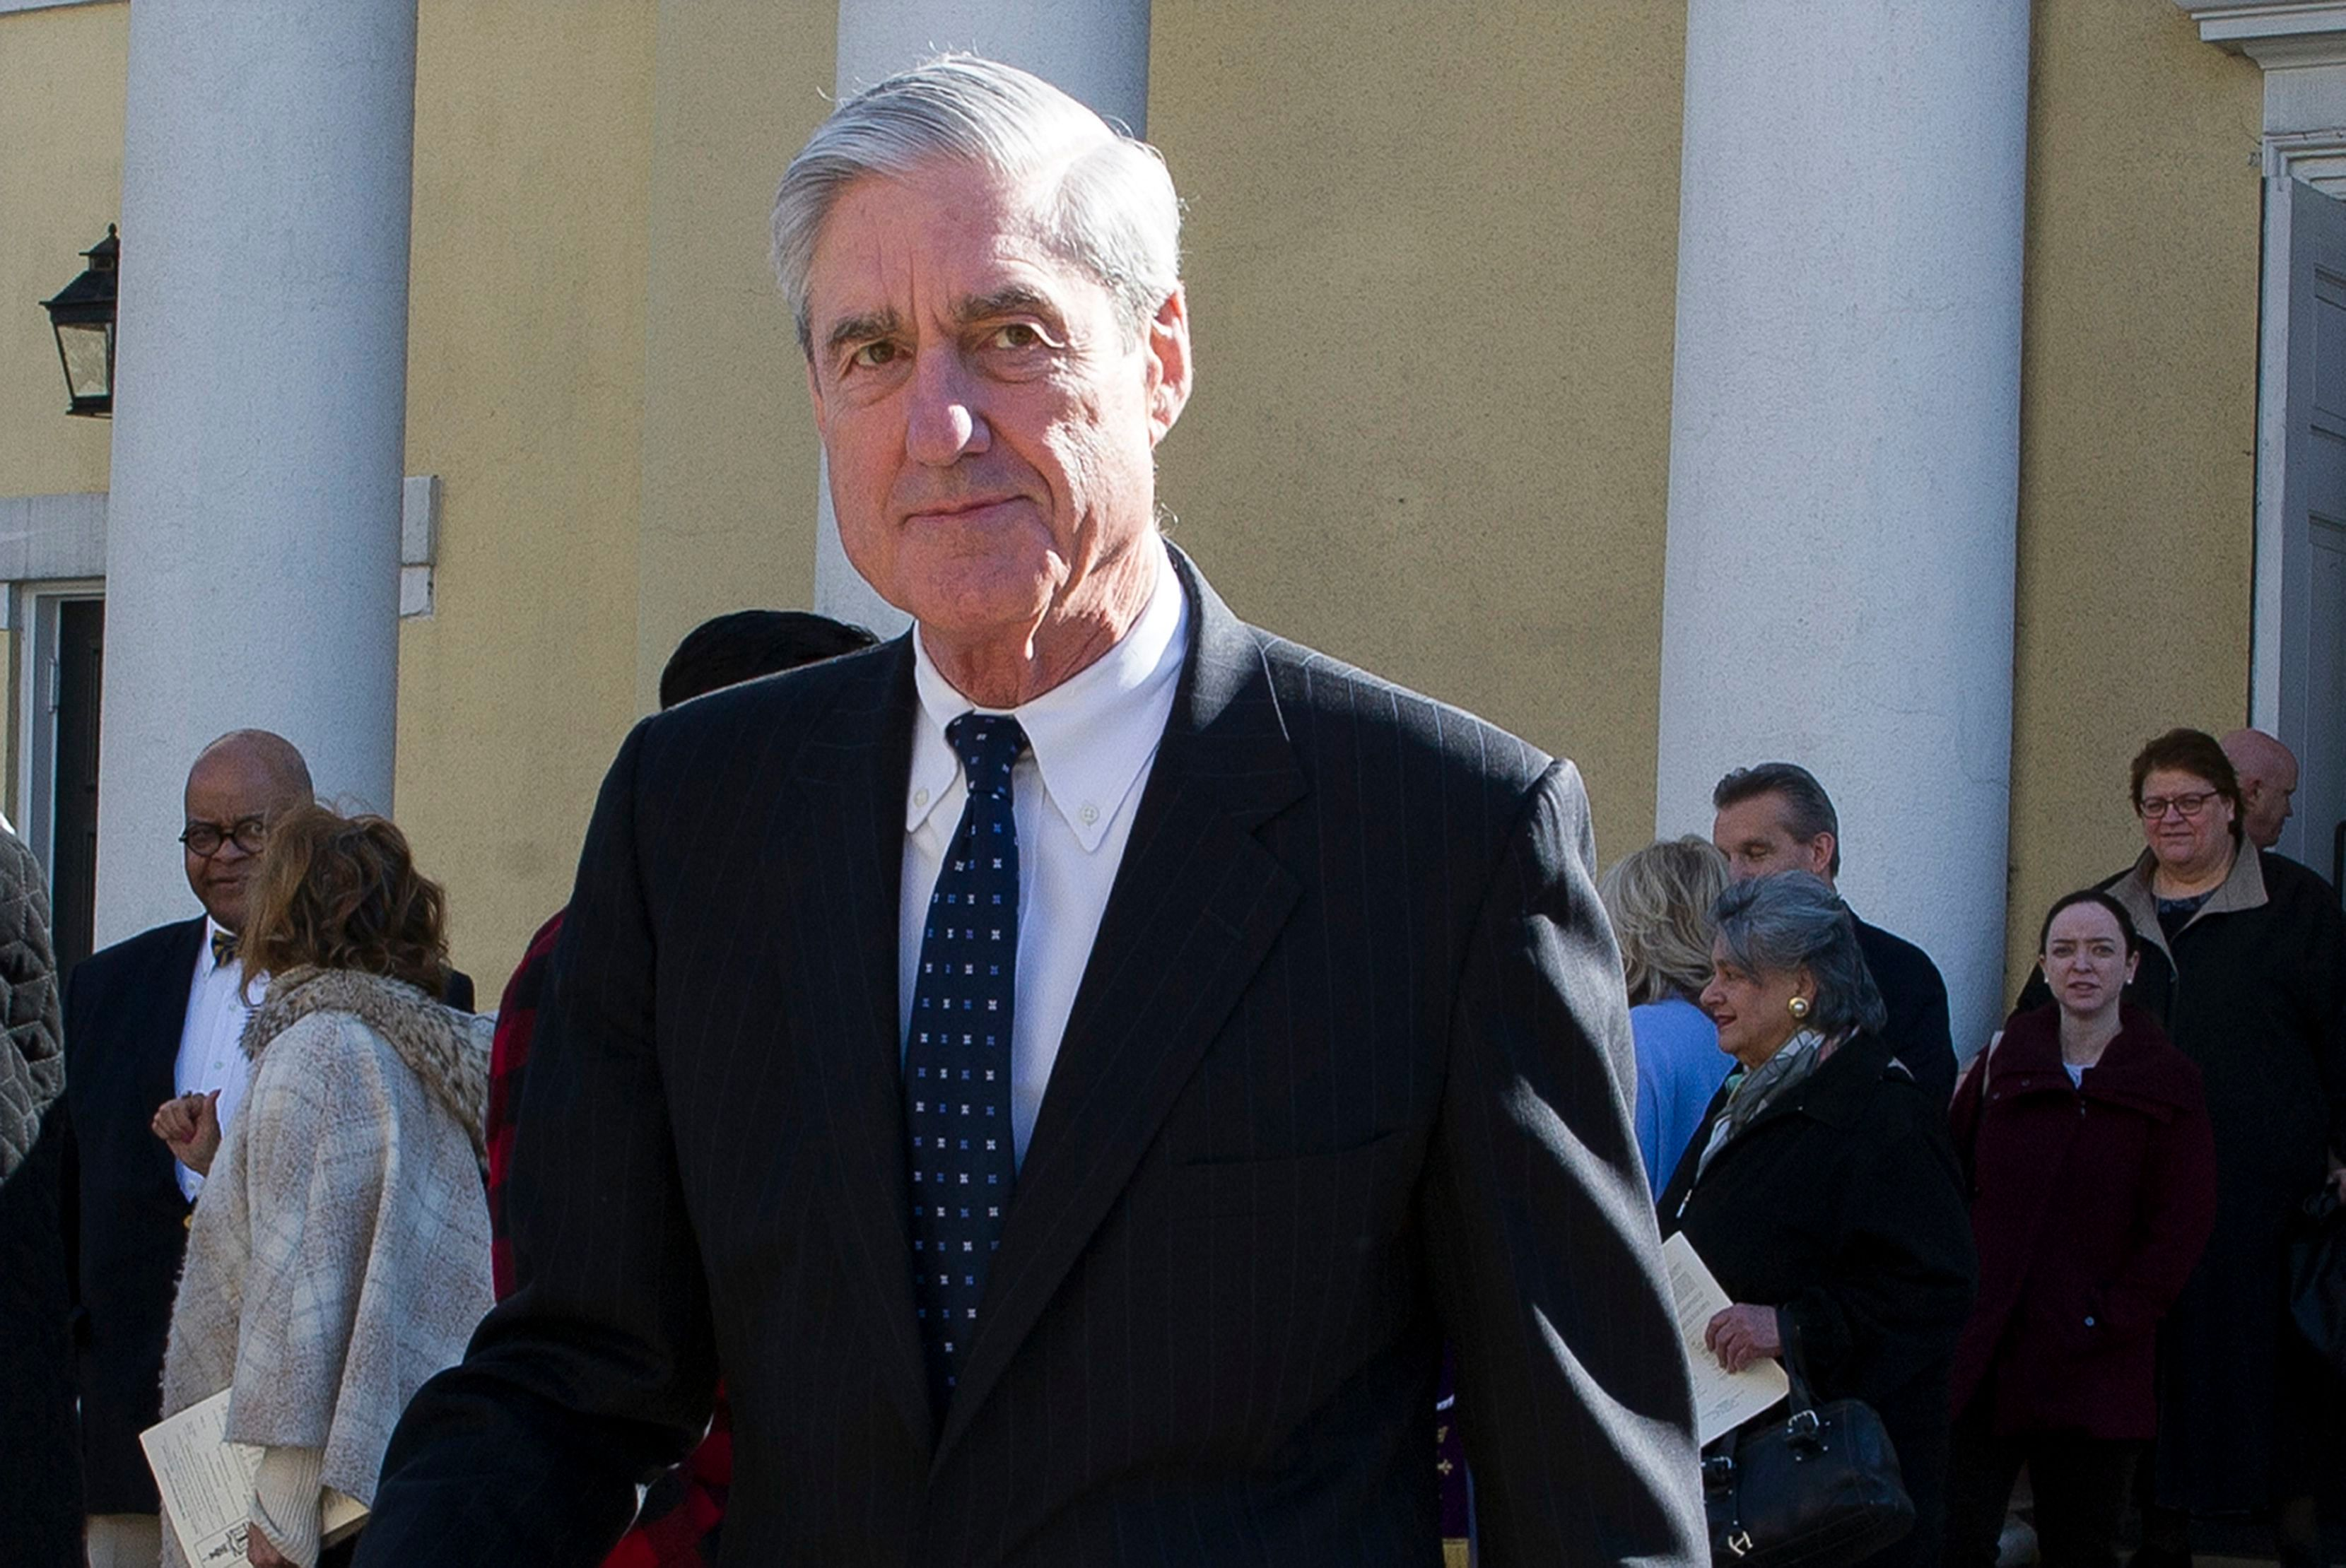 Special counsel Robert Mueller departs St. John's Episcopal Church, across from the White House in Washington. Democrats say they want